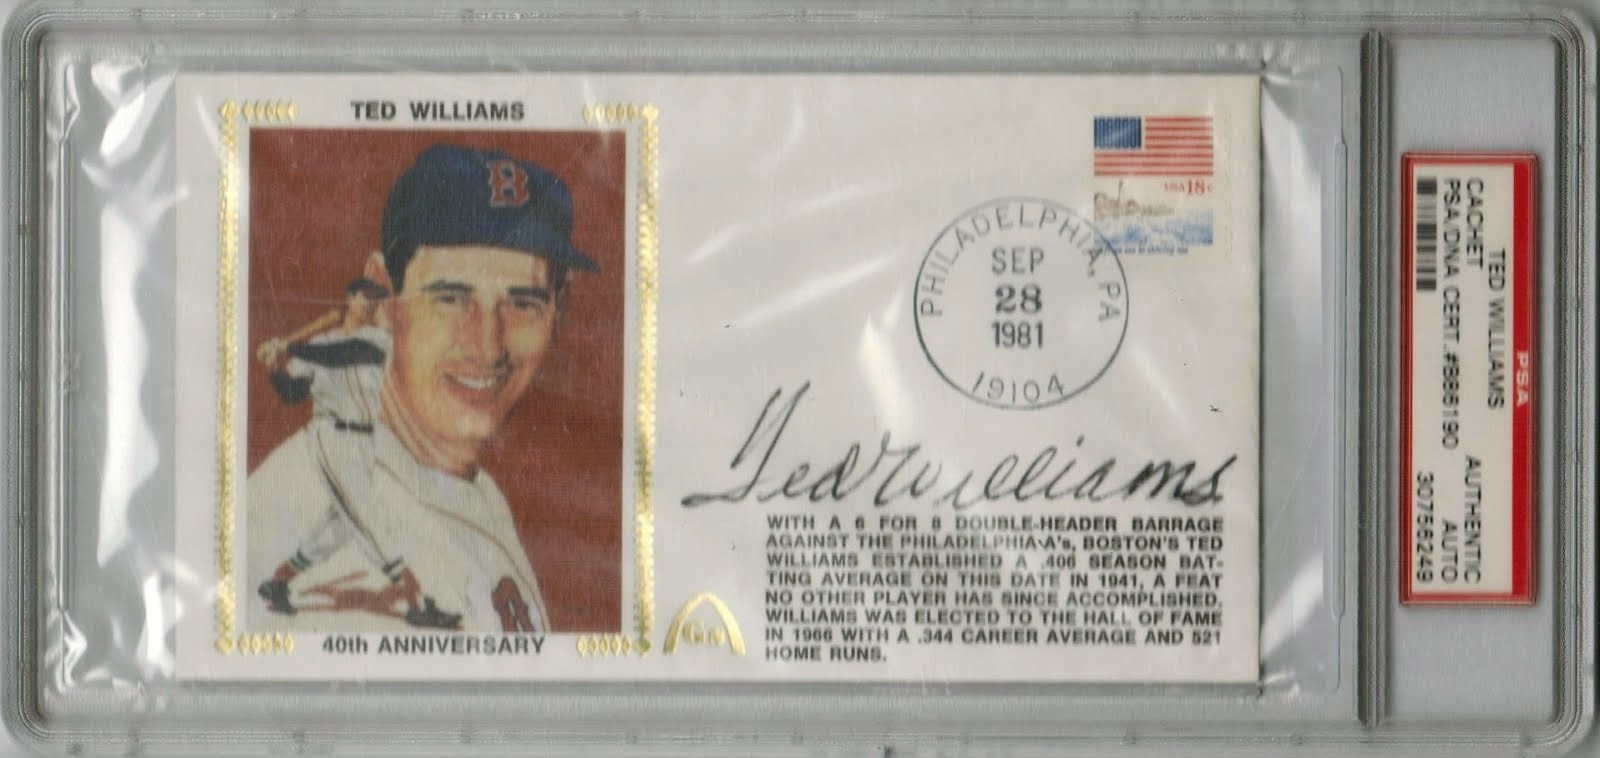 Ted Williams signed cachet